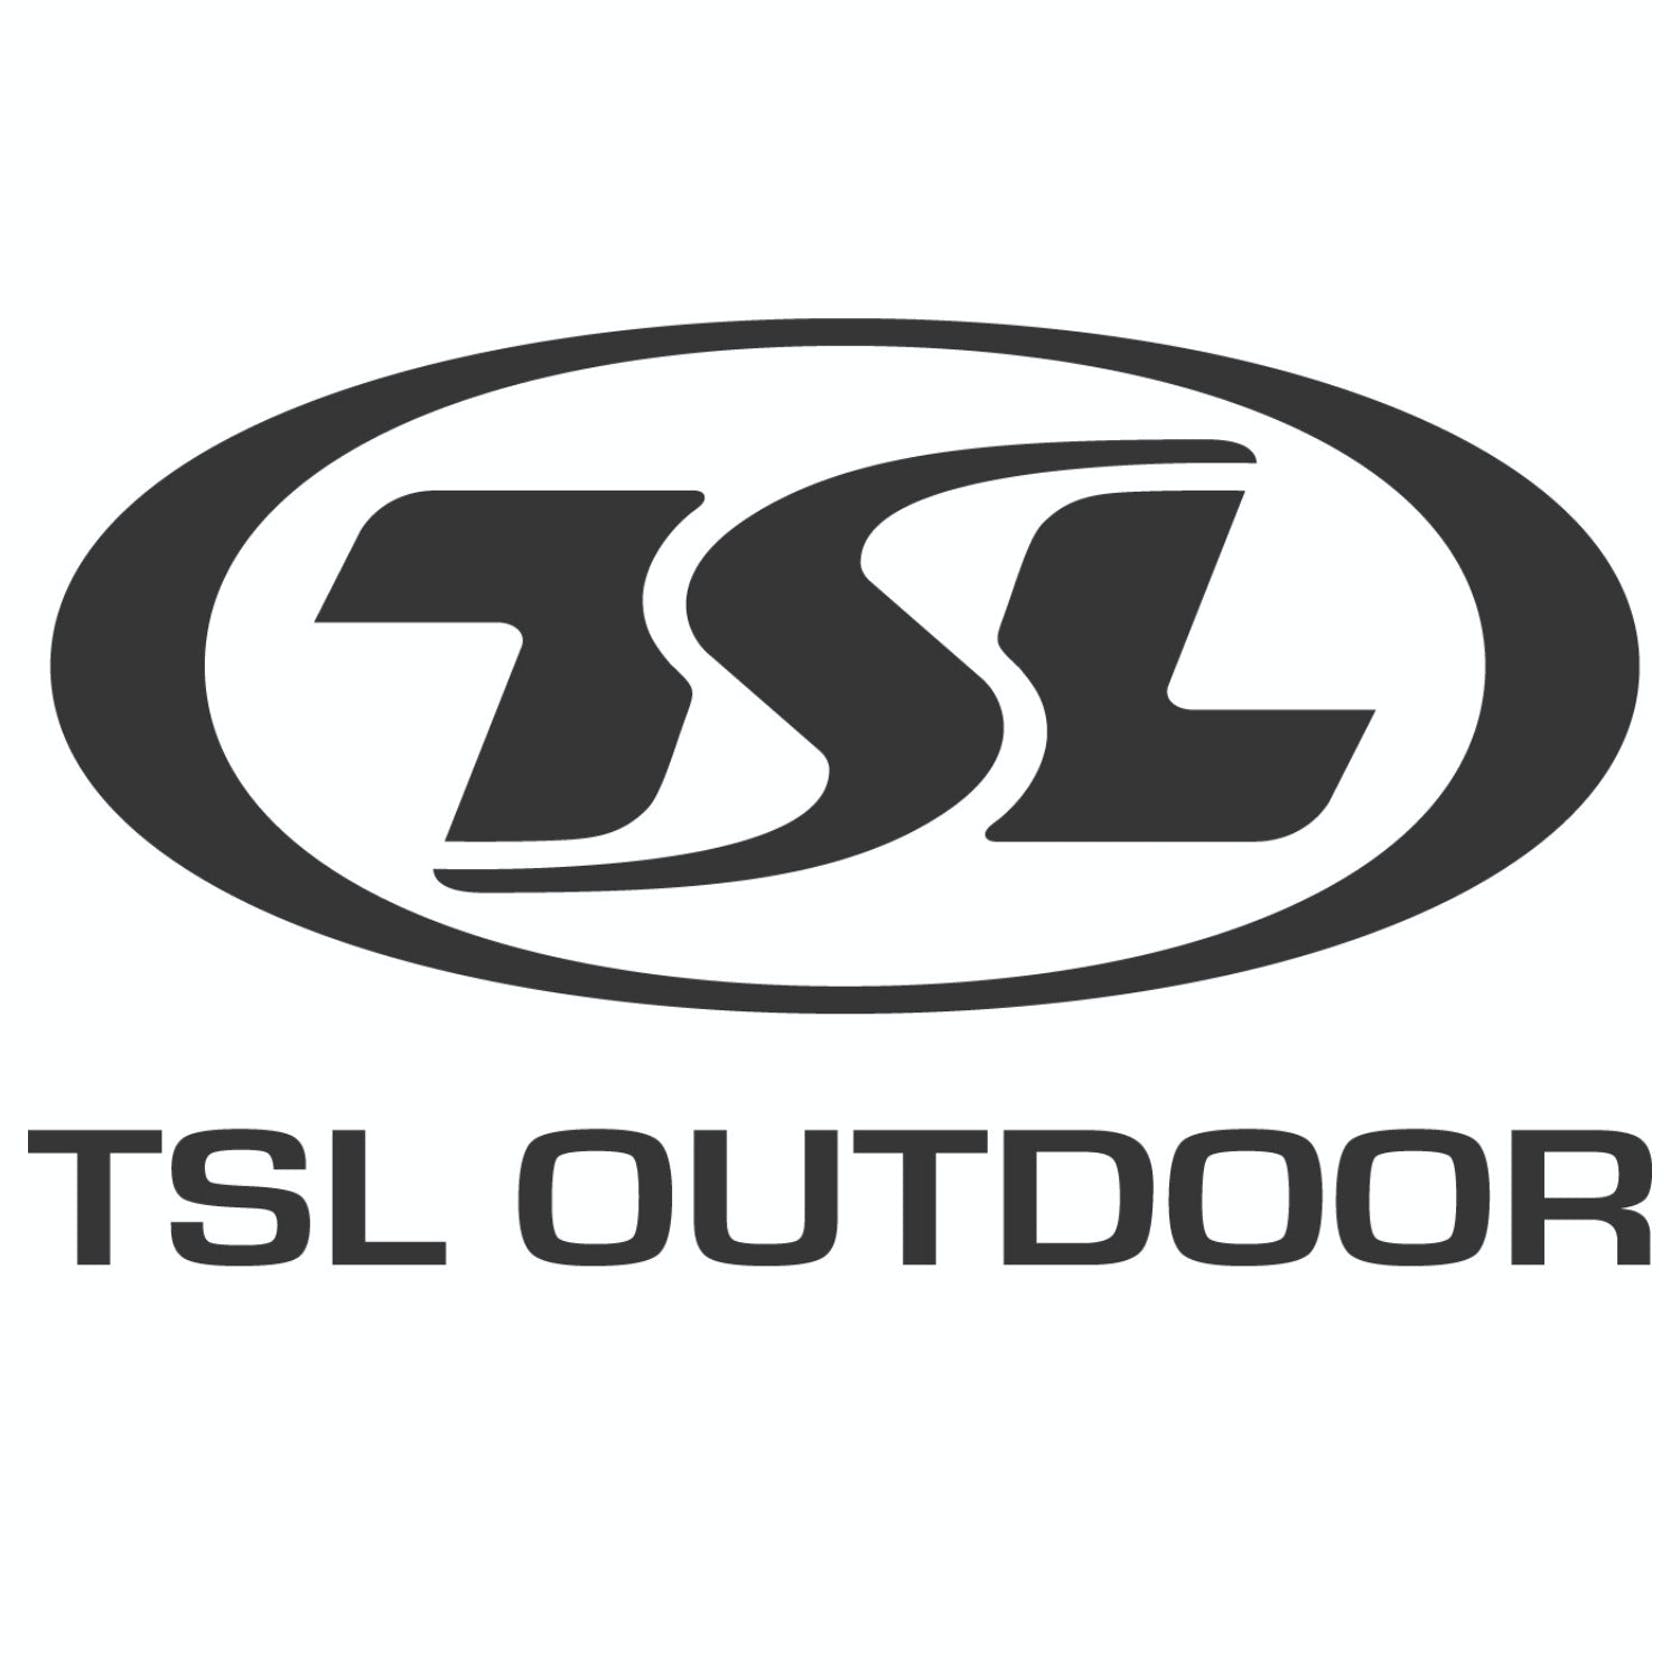 tsl outdoor shop online